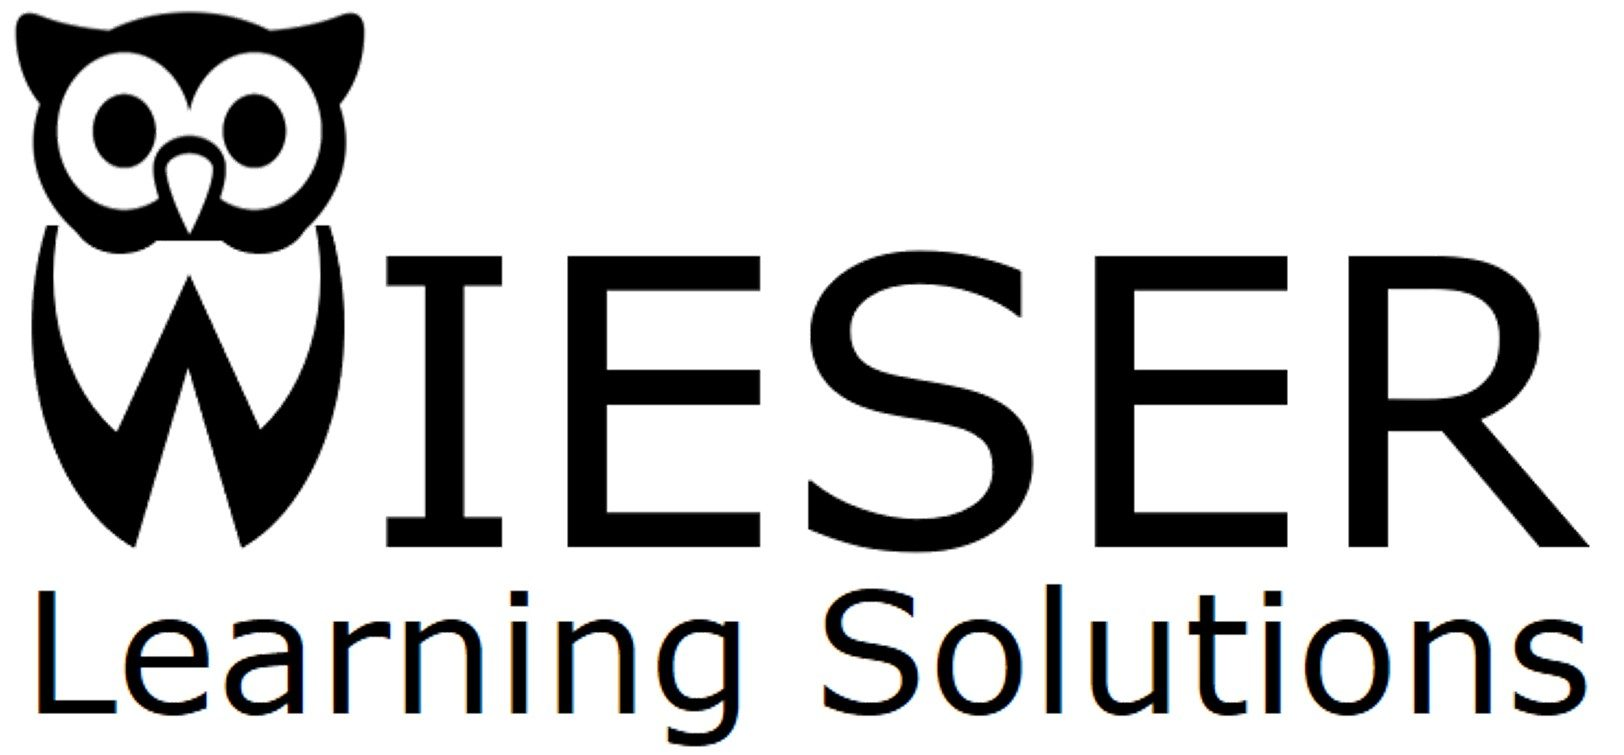 Wieser Learning Solutions